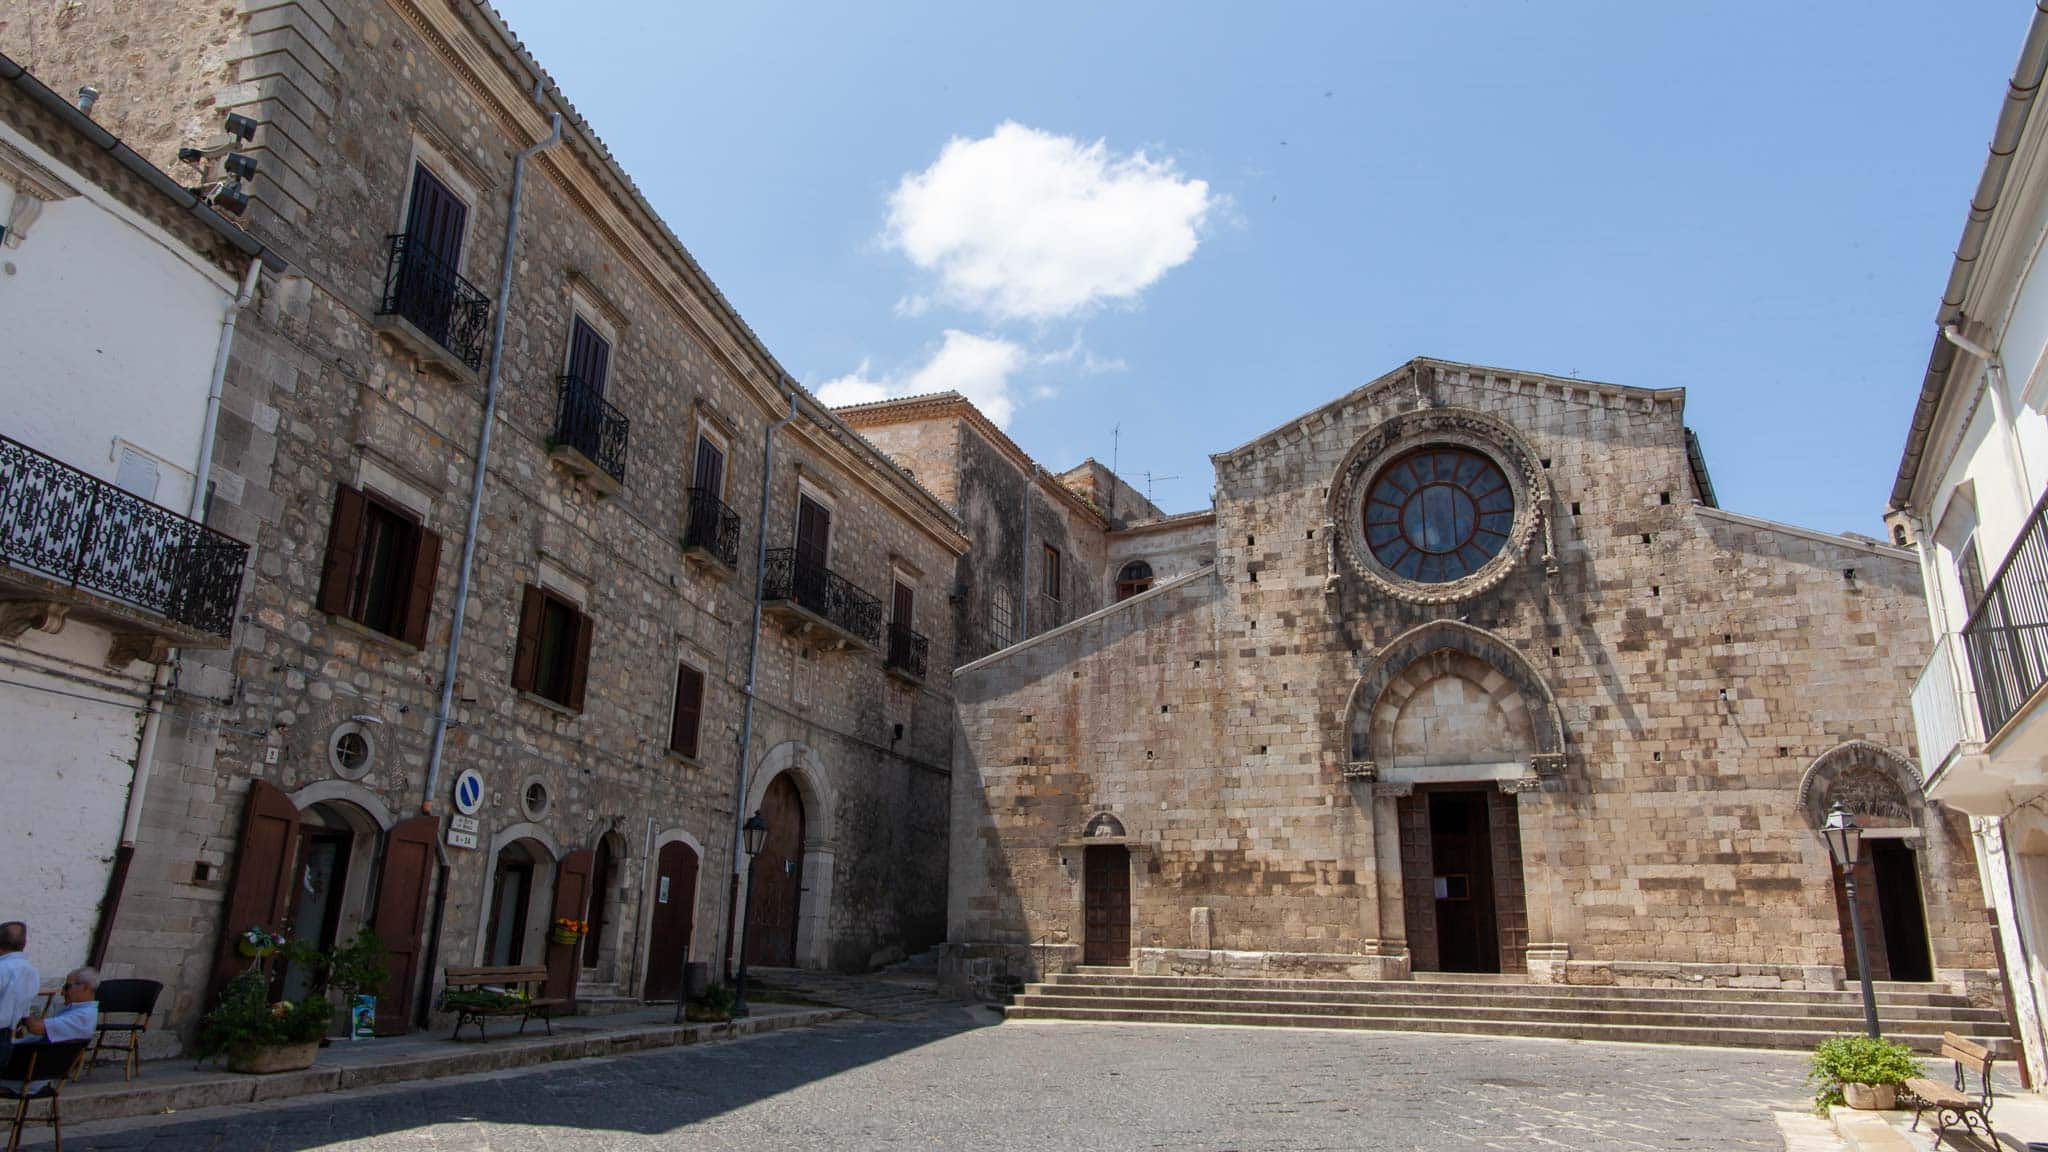 In the square of Bovino, Puglia, sits the main cathedral